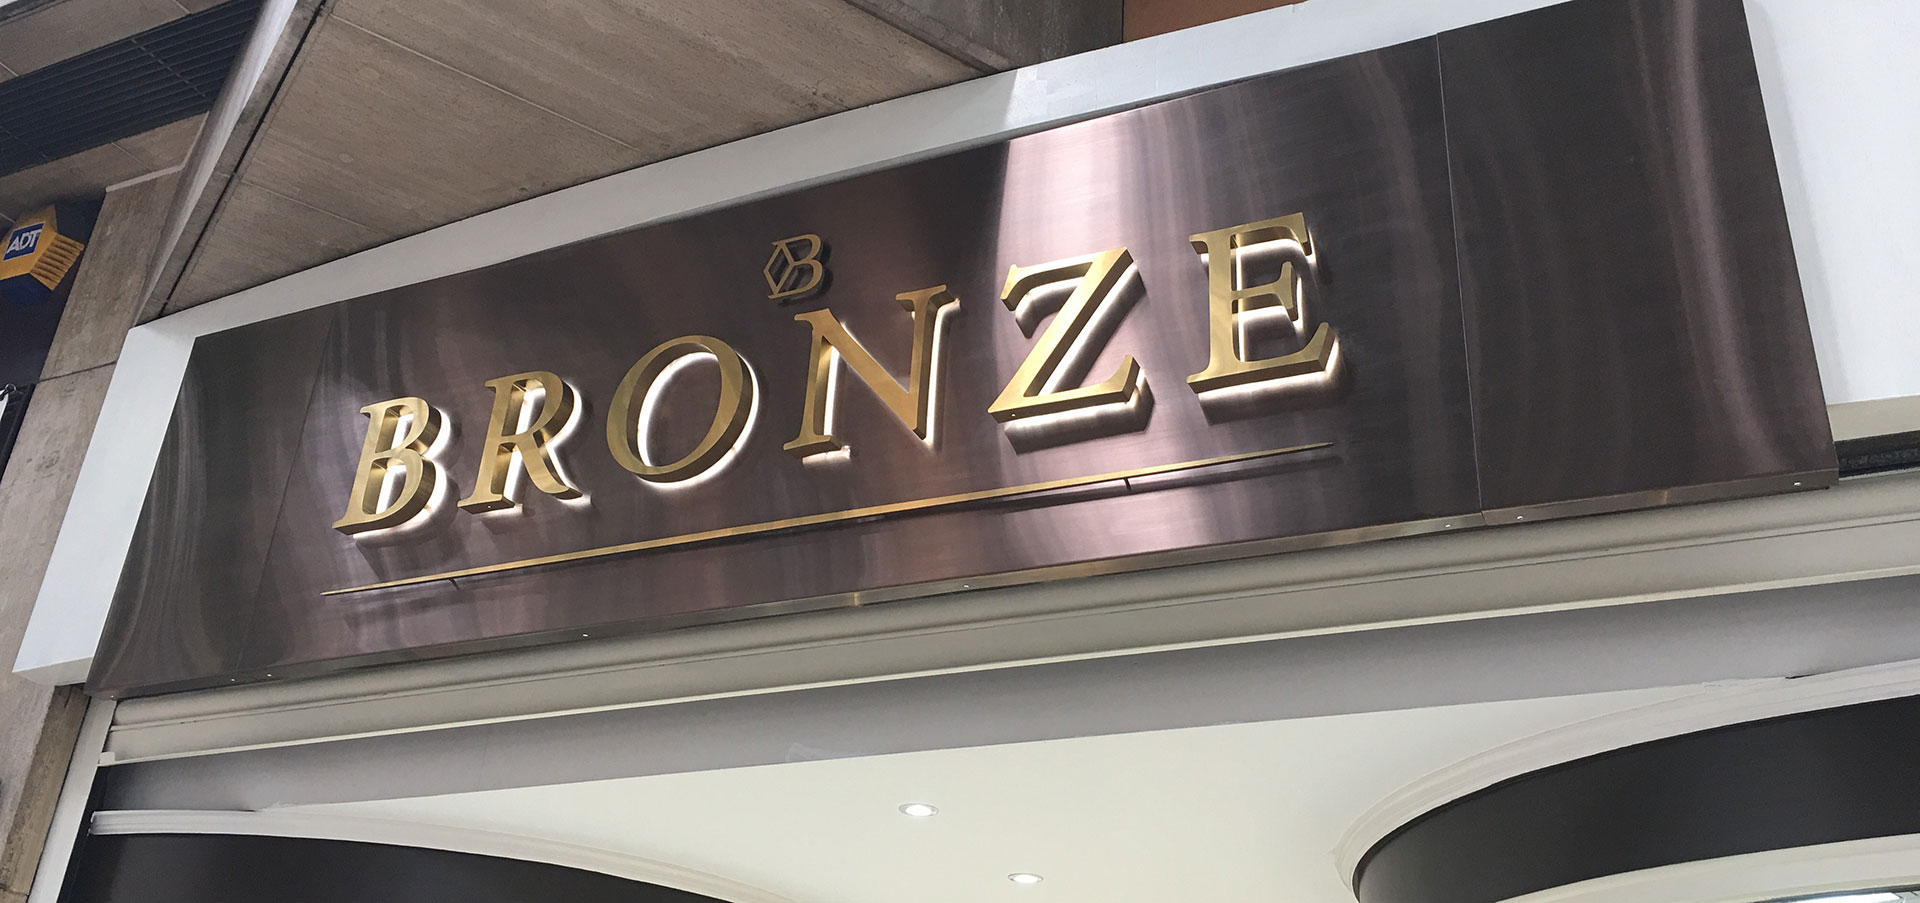 Rimex Letters for House of Bronze